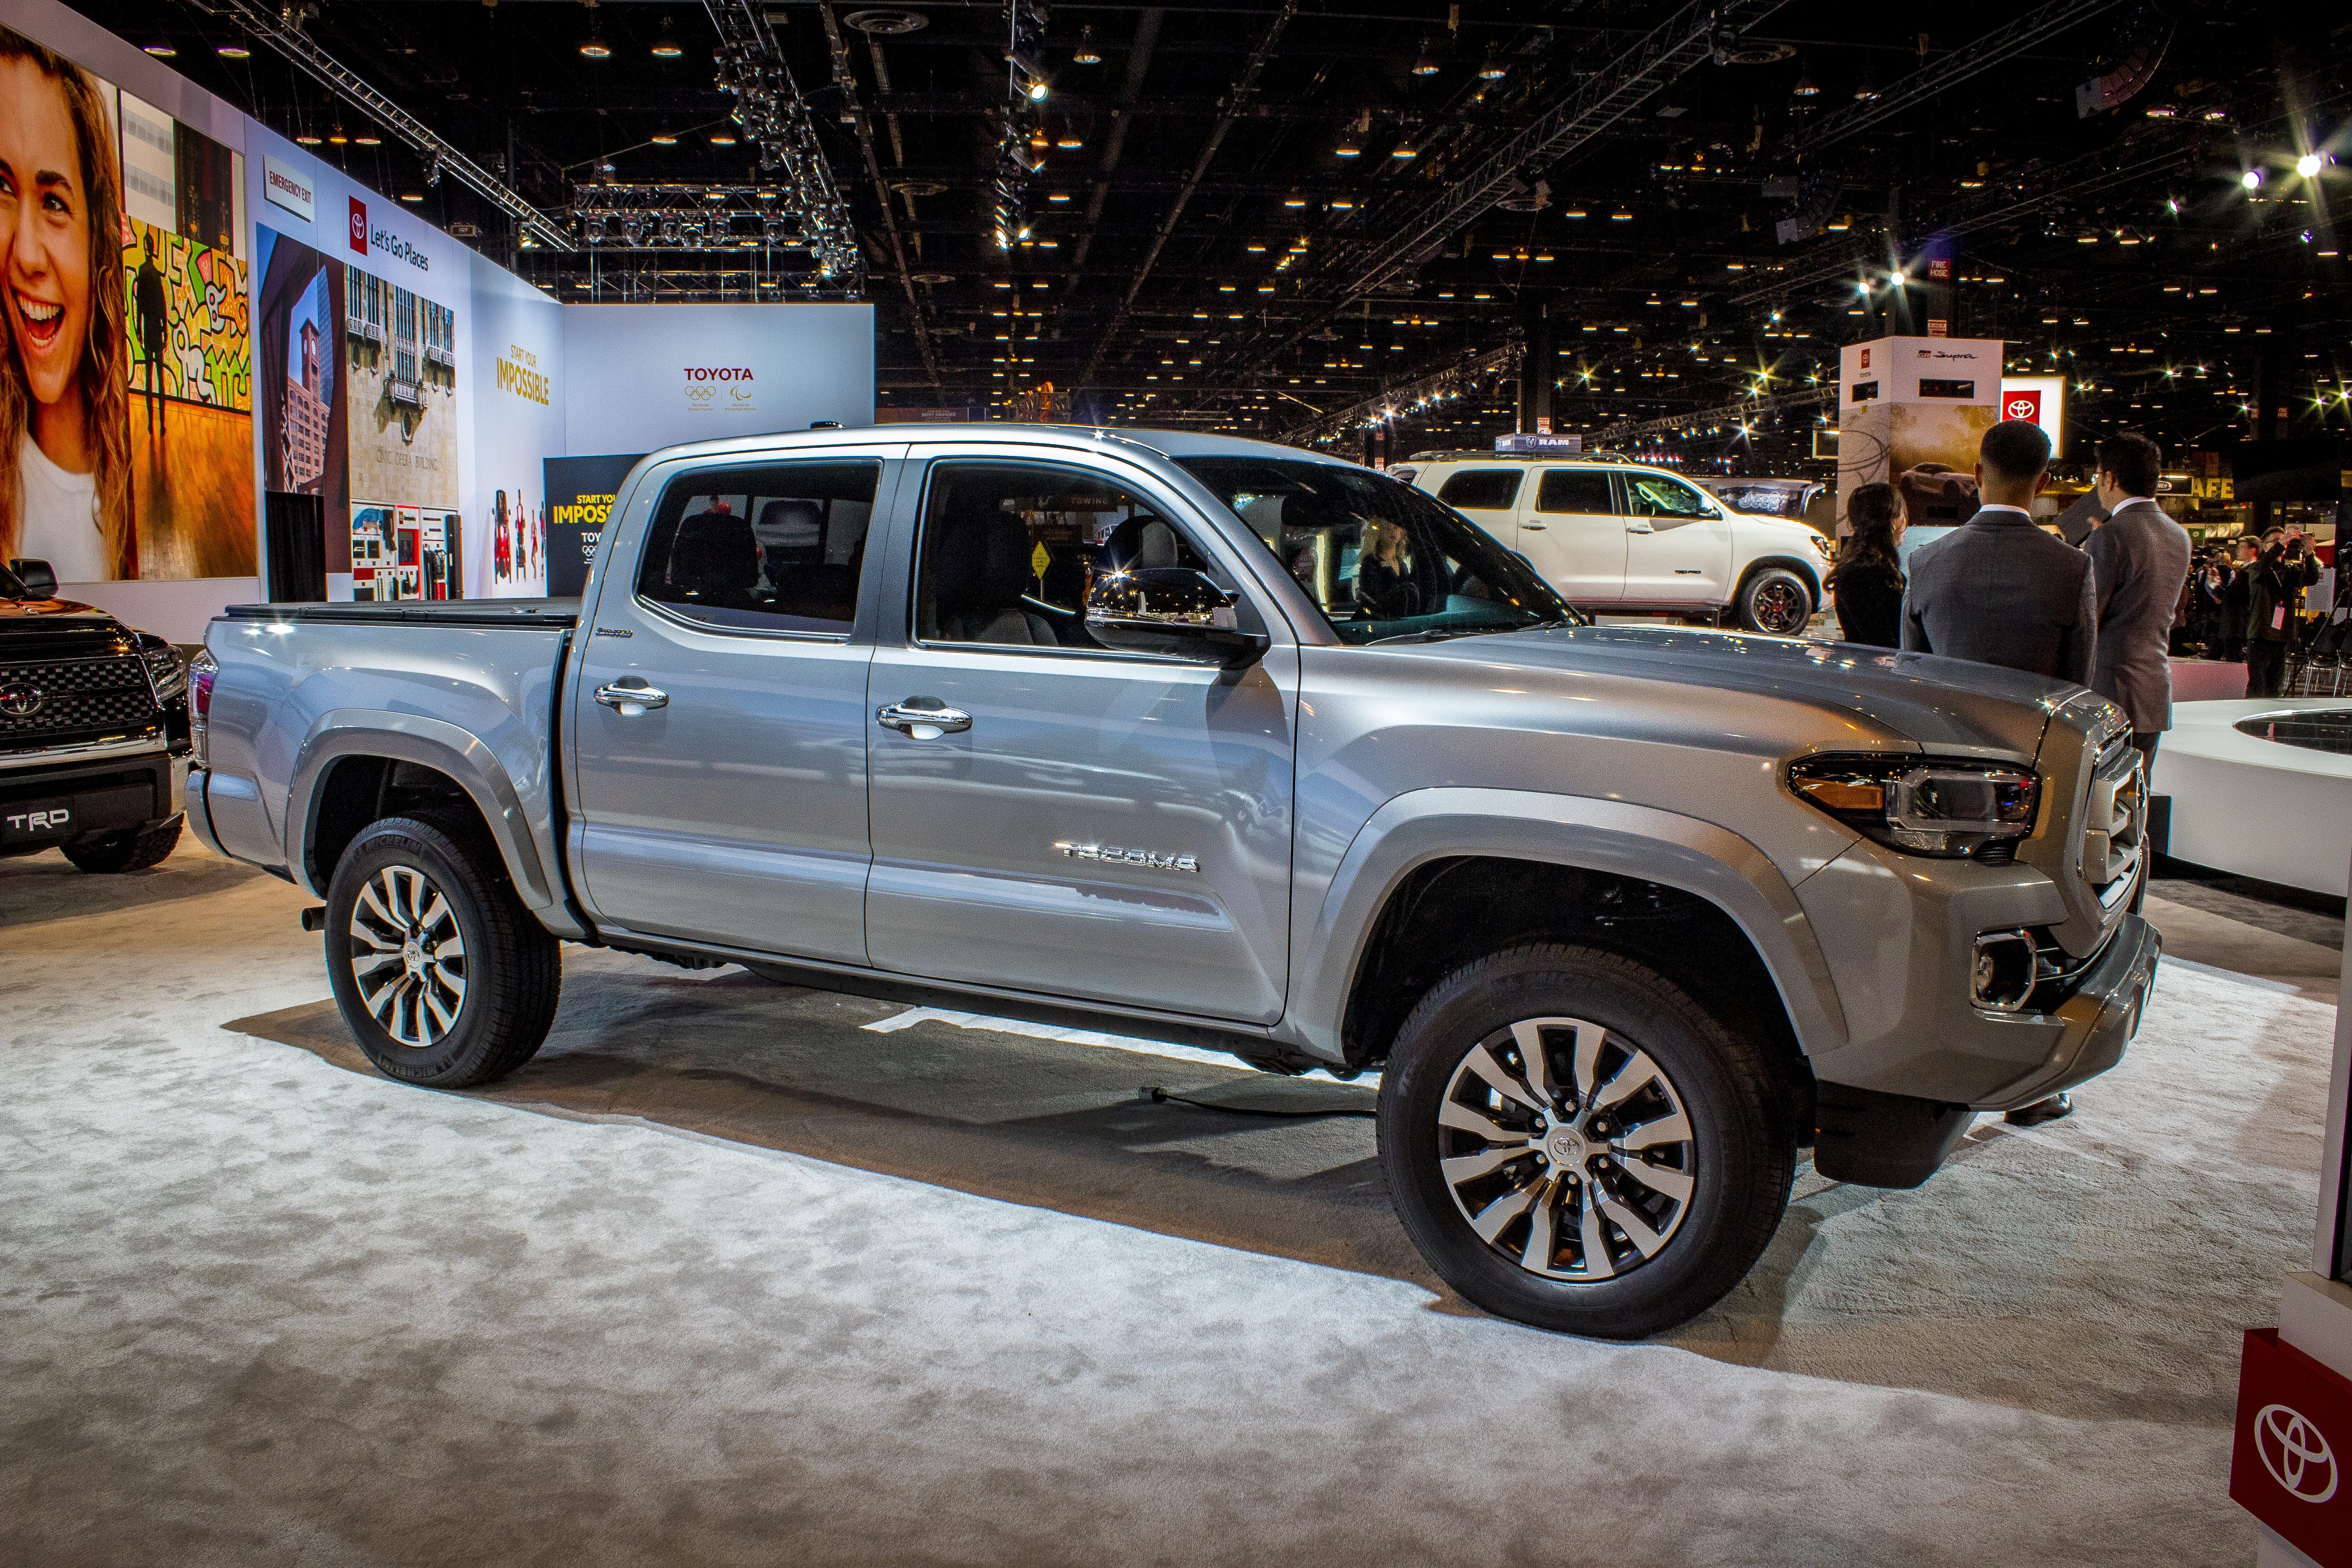 2020 Toyota Tacoma Pictures, Photos, Wallpapers. | Top Speed